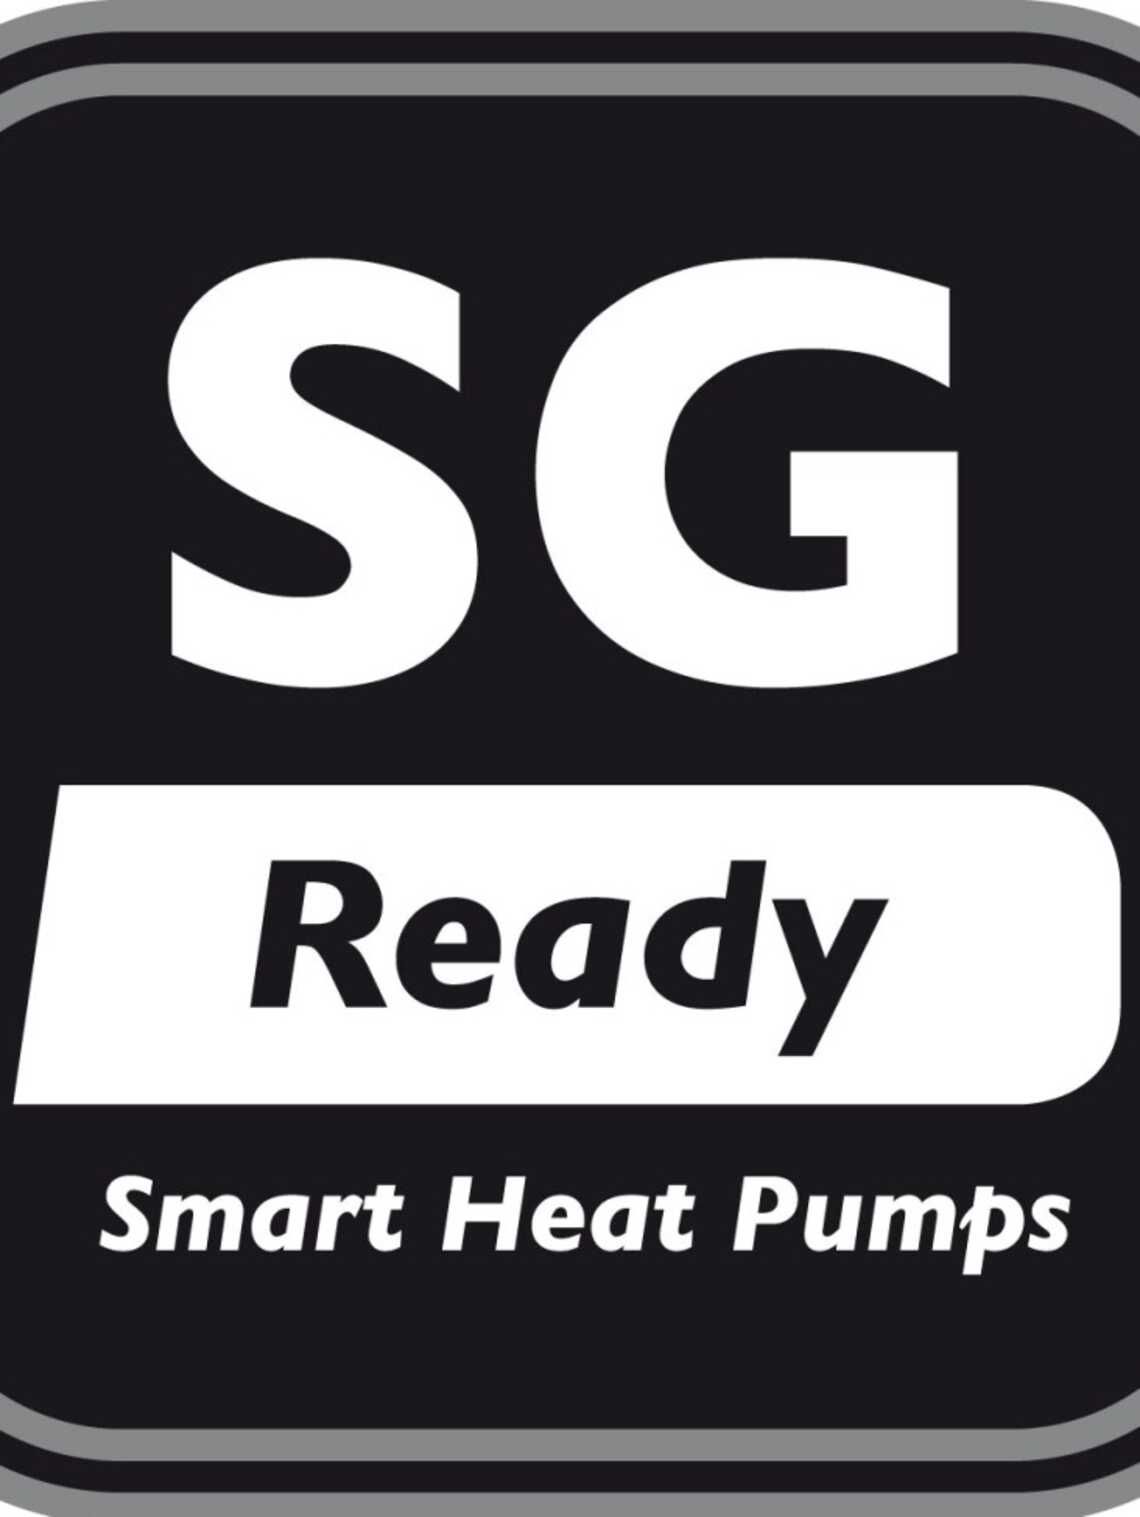 SG Ready Smart Heat Pumps